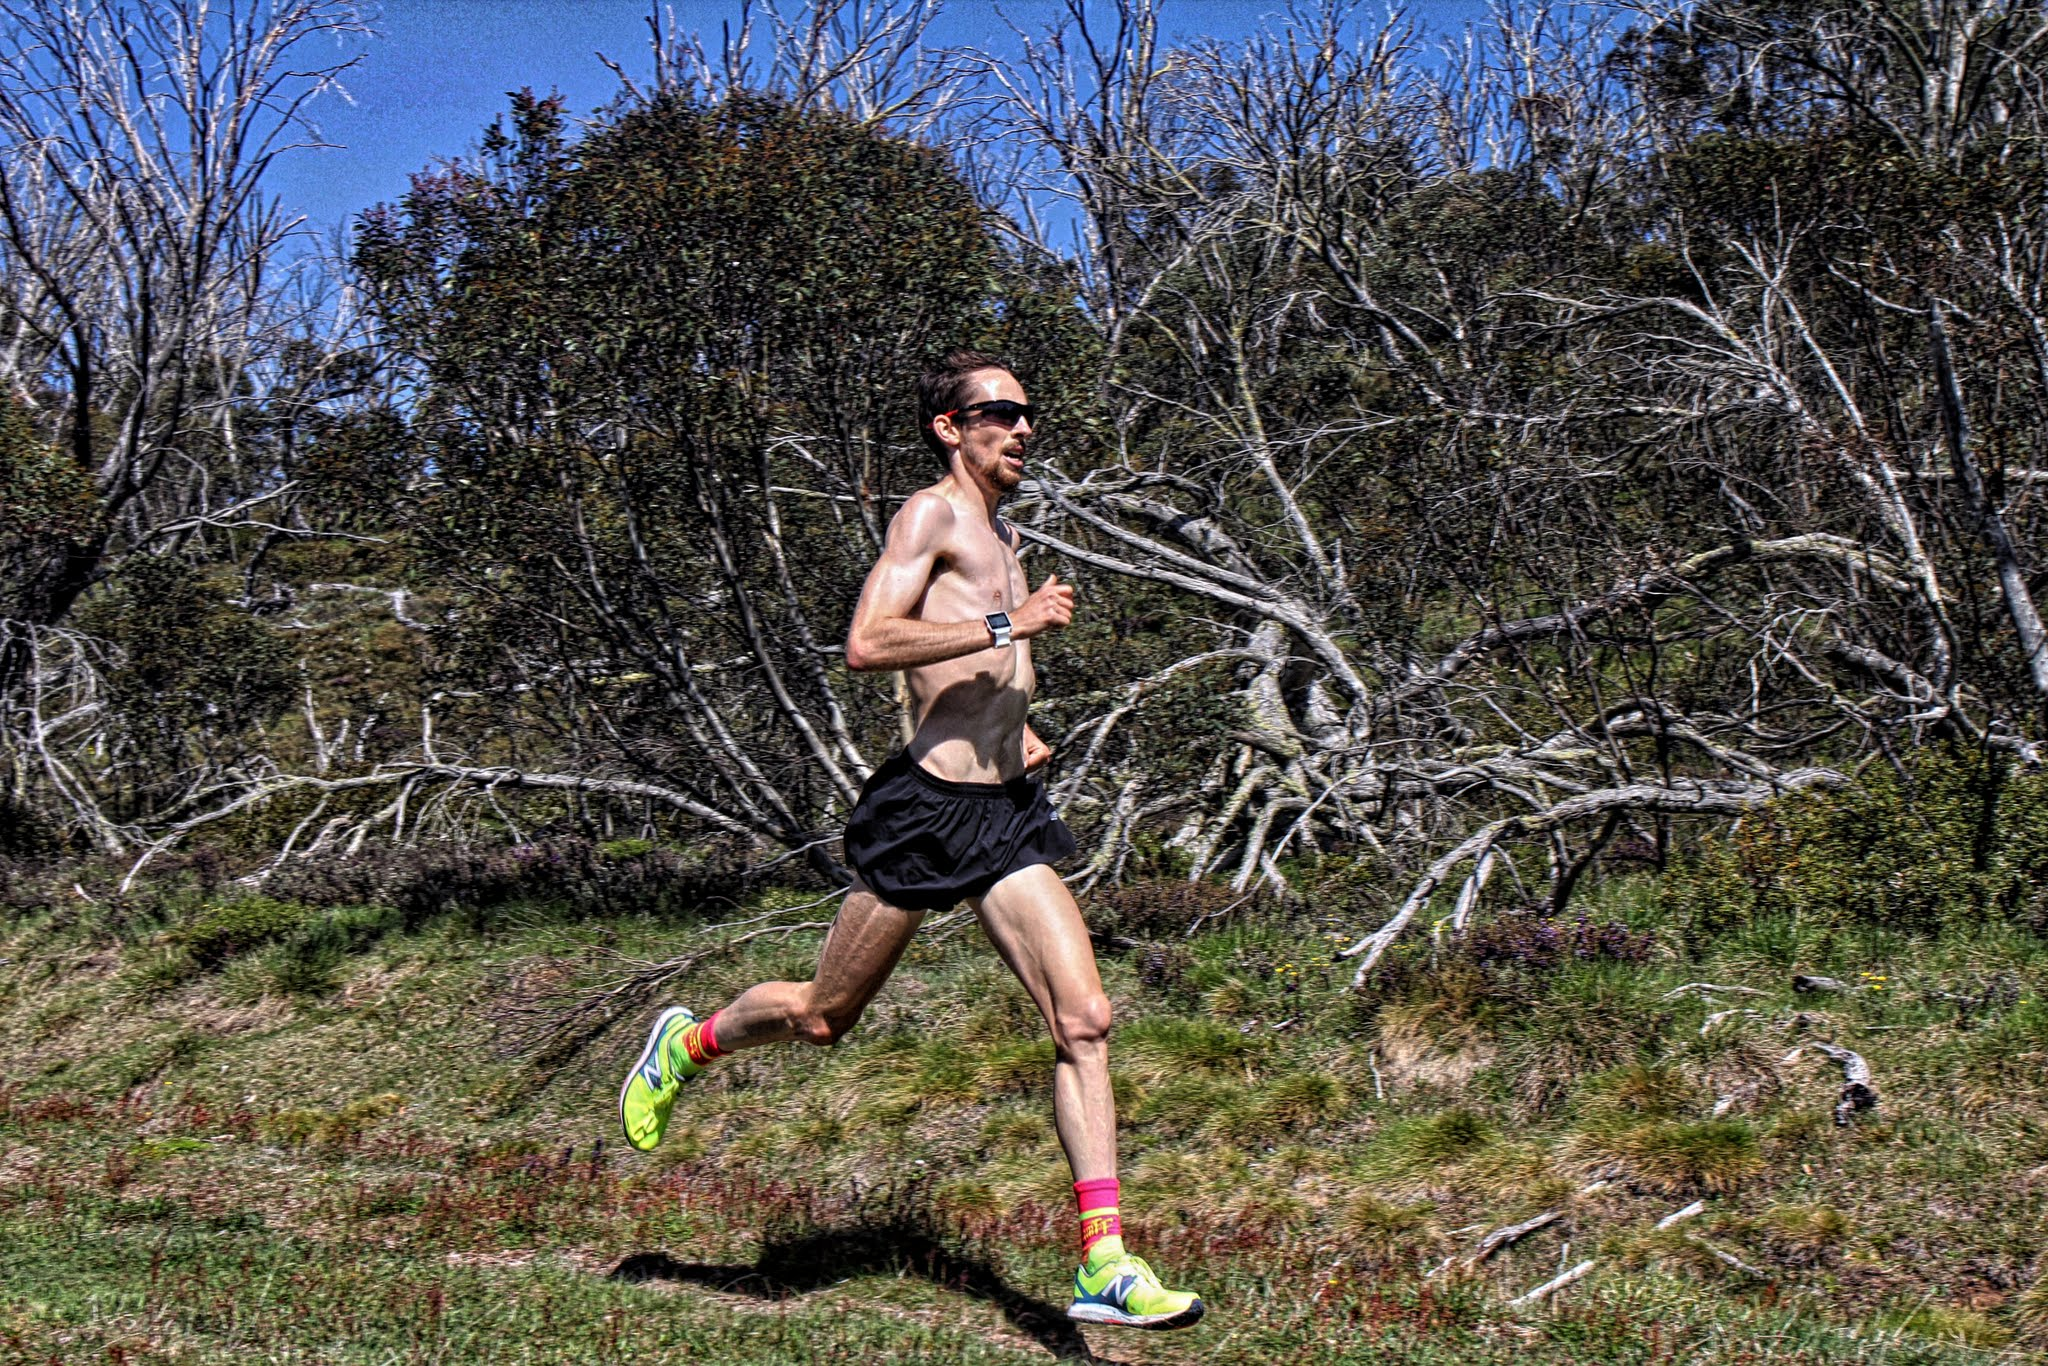 McNeill training at altitude, Falls Creek Victoria earlier this year with MTC